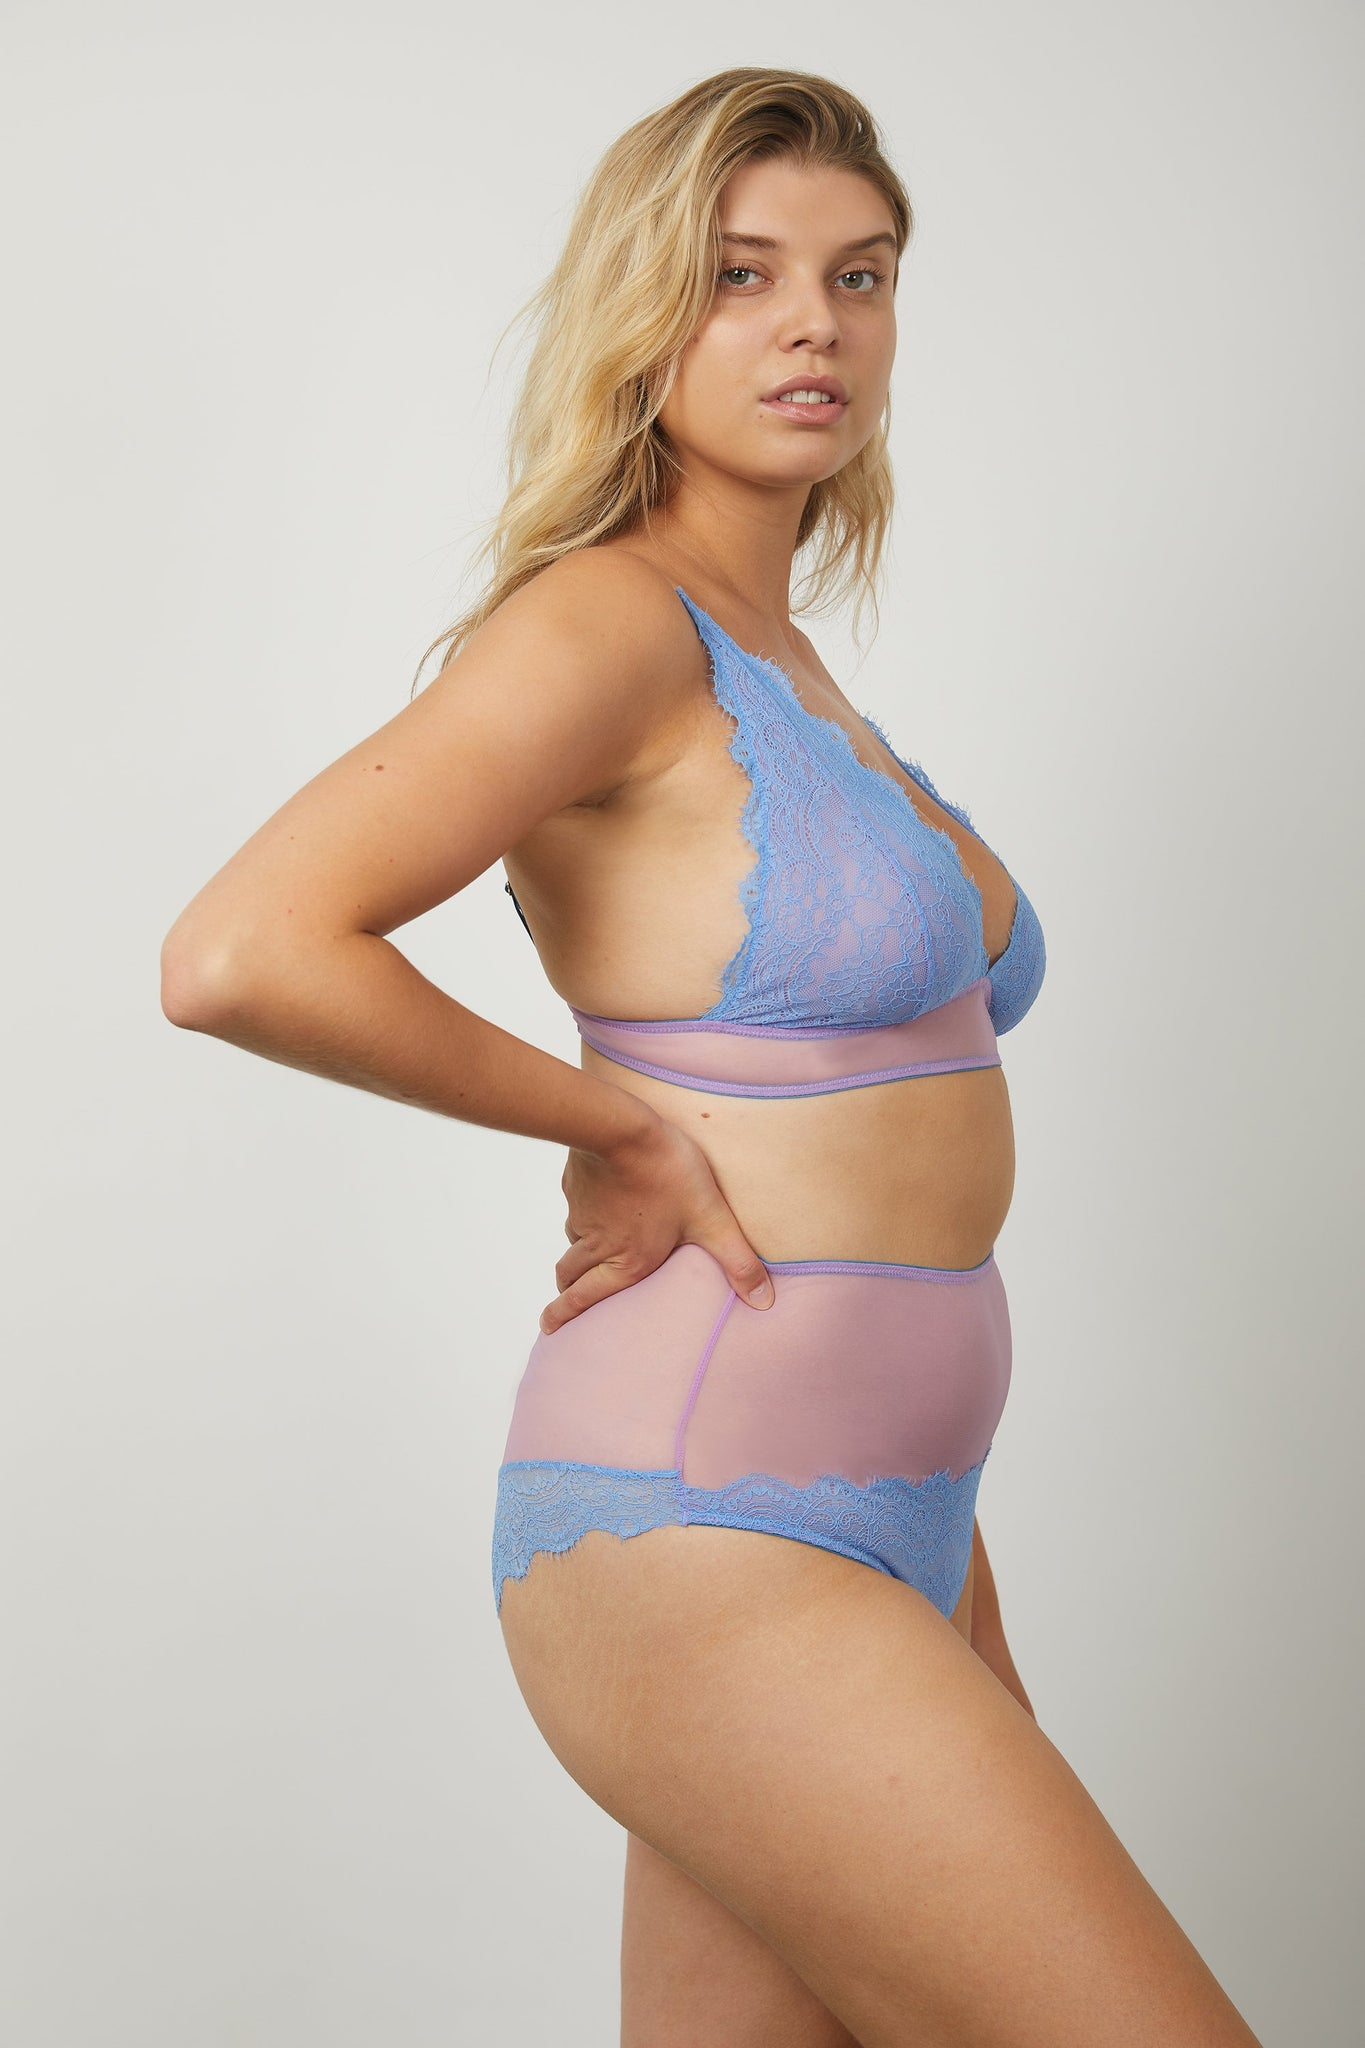 Jessica High Apex Triangle Bra - Dora Larsen | Colourful Lingerie